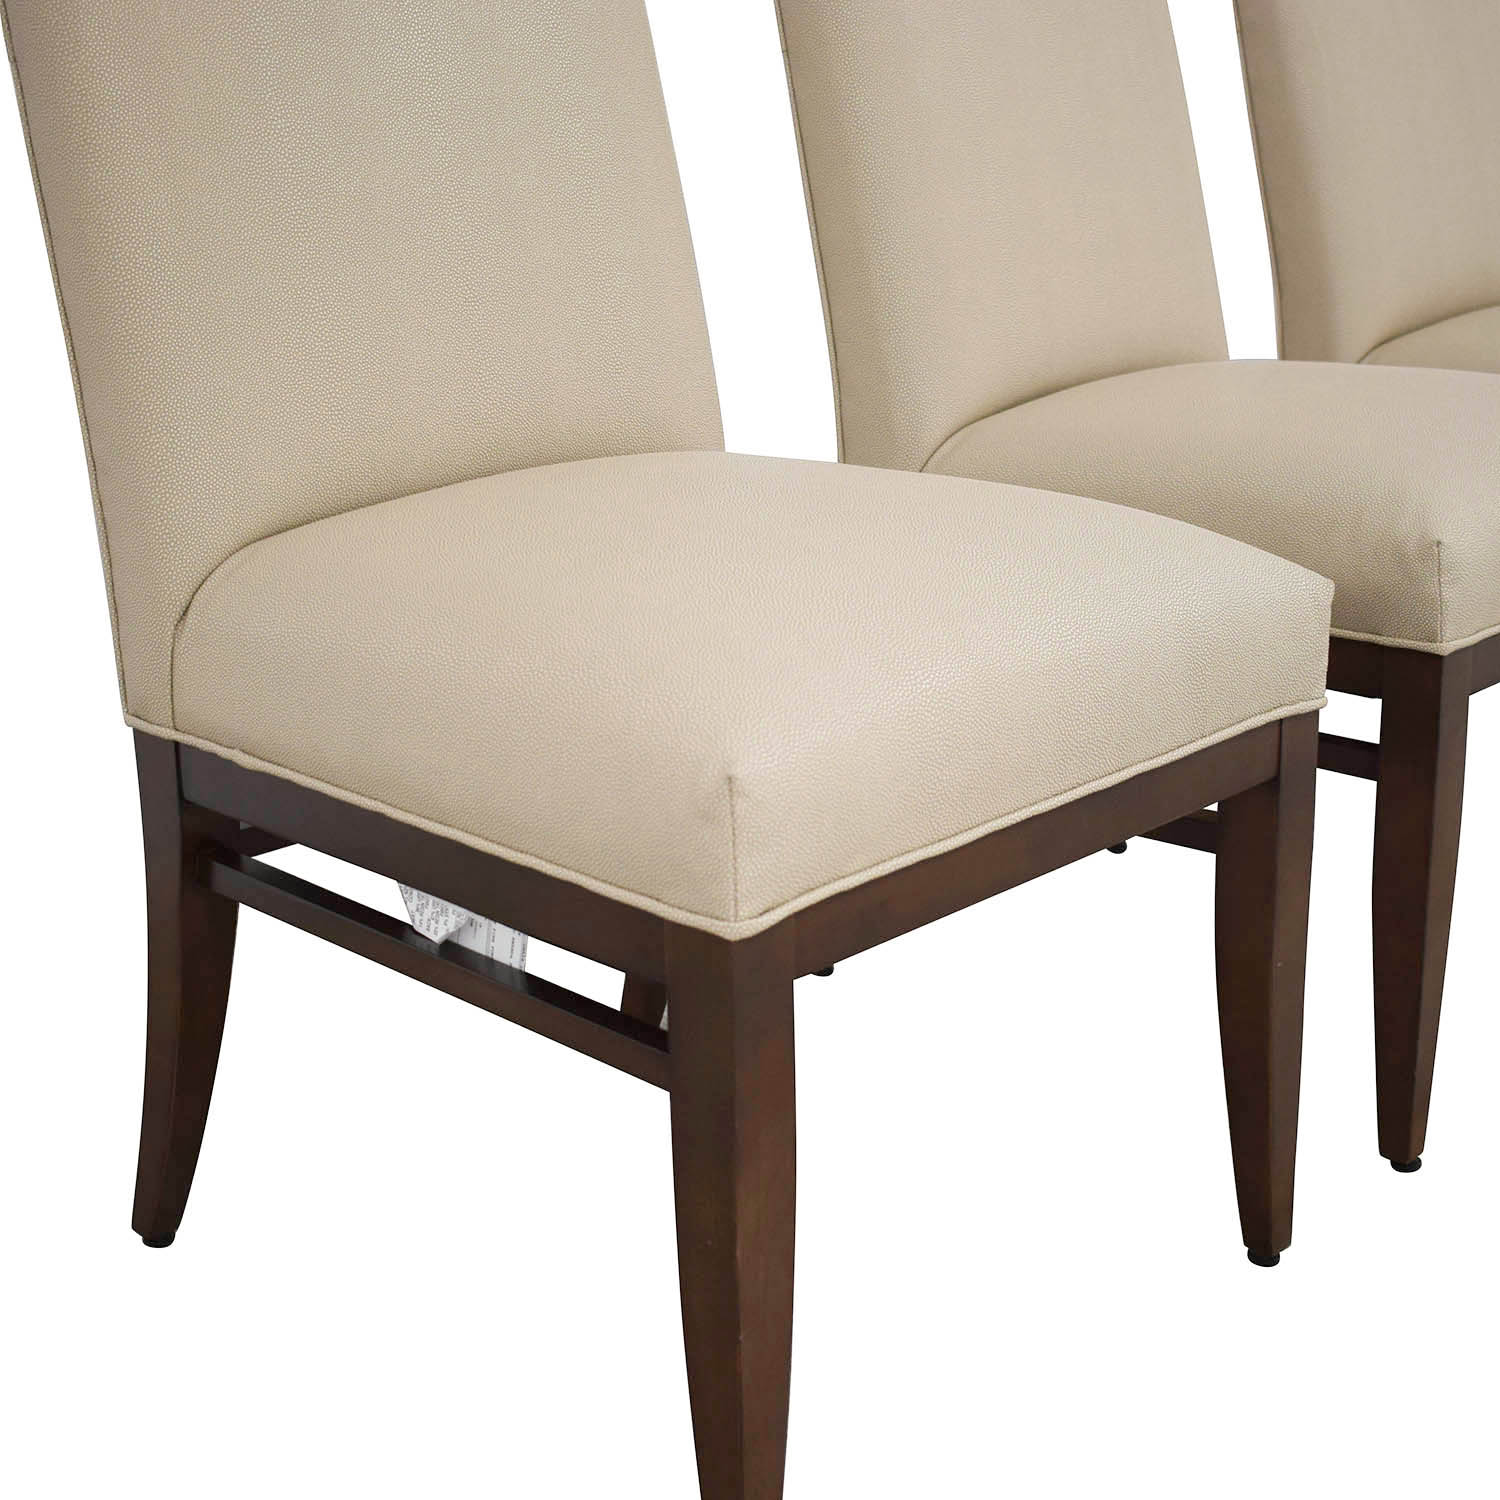 Duralee Duralee Kent Upholstered Dining Chairs discount